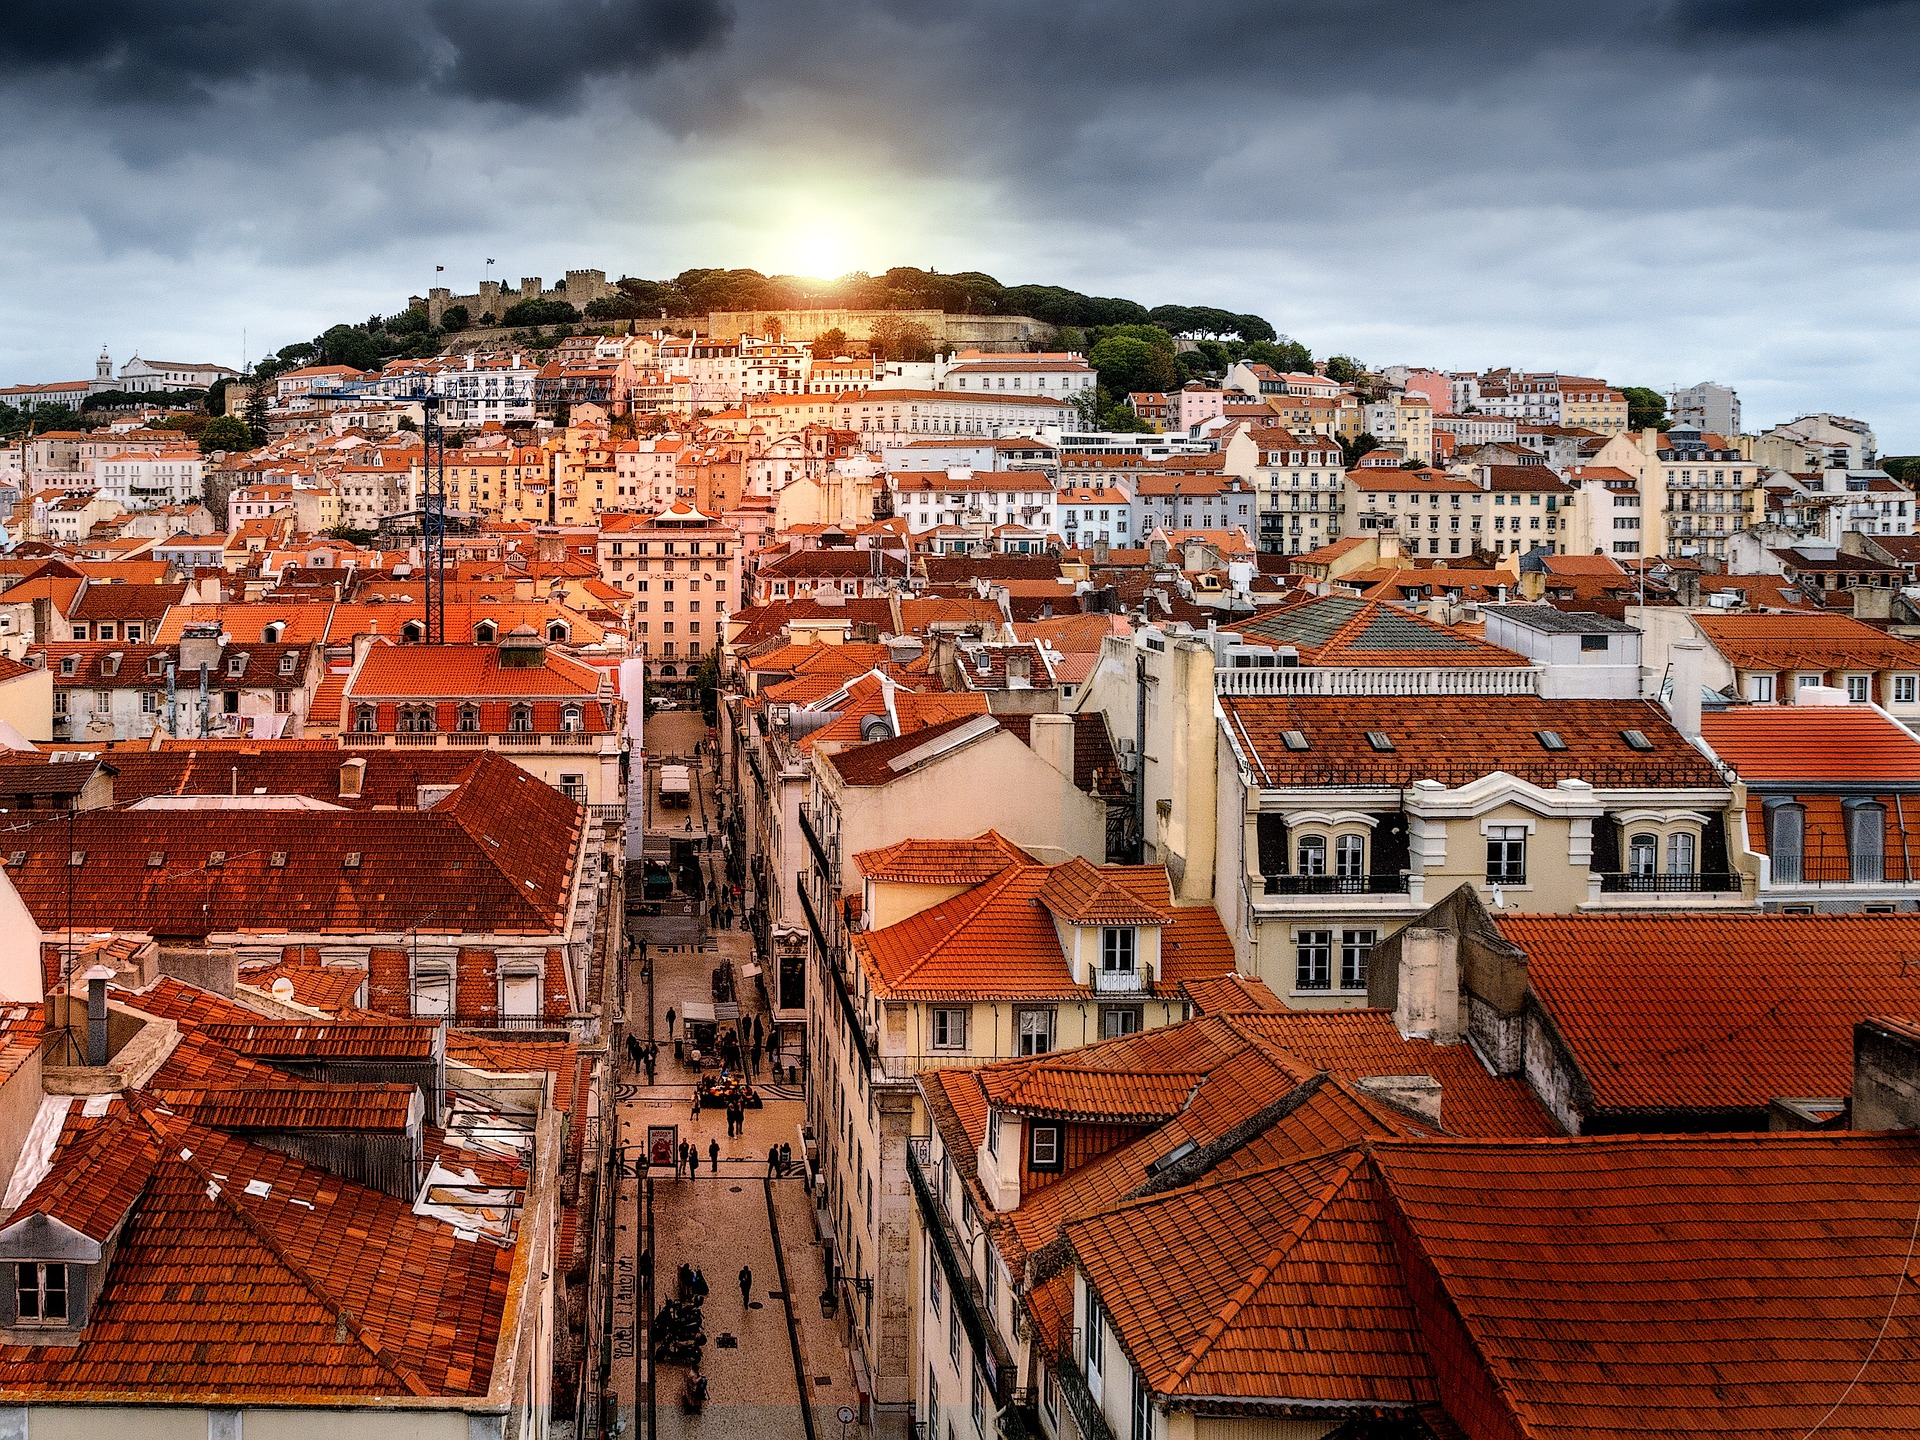 We are stoked to be half Portuguese. Such a beautiful country (credit to the photographer).